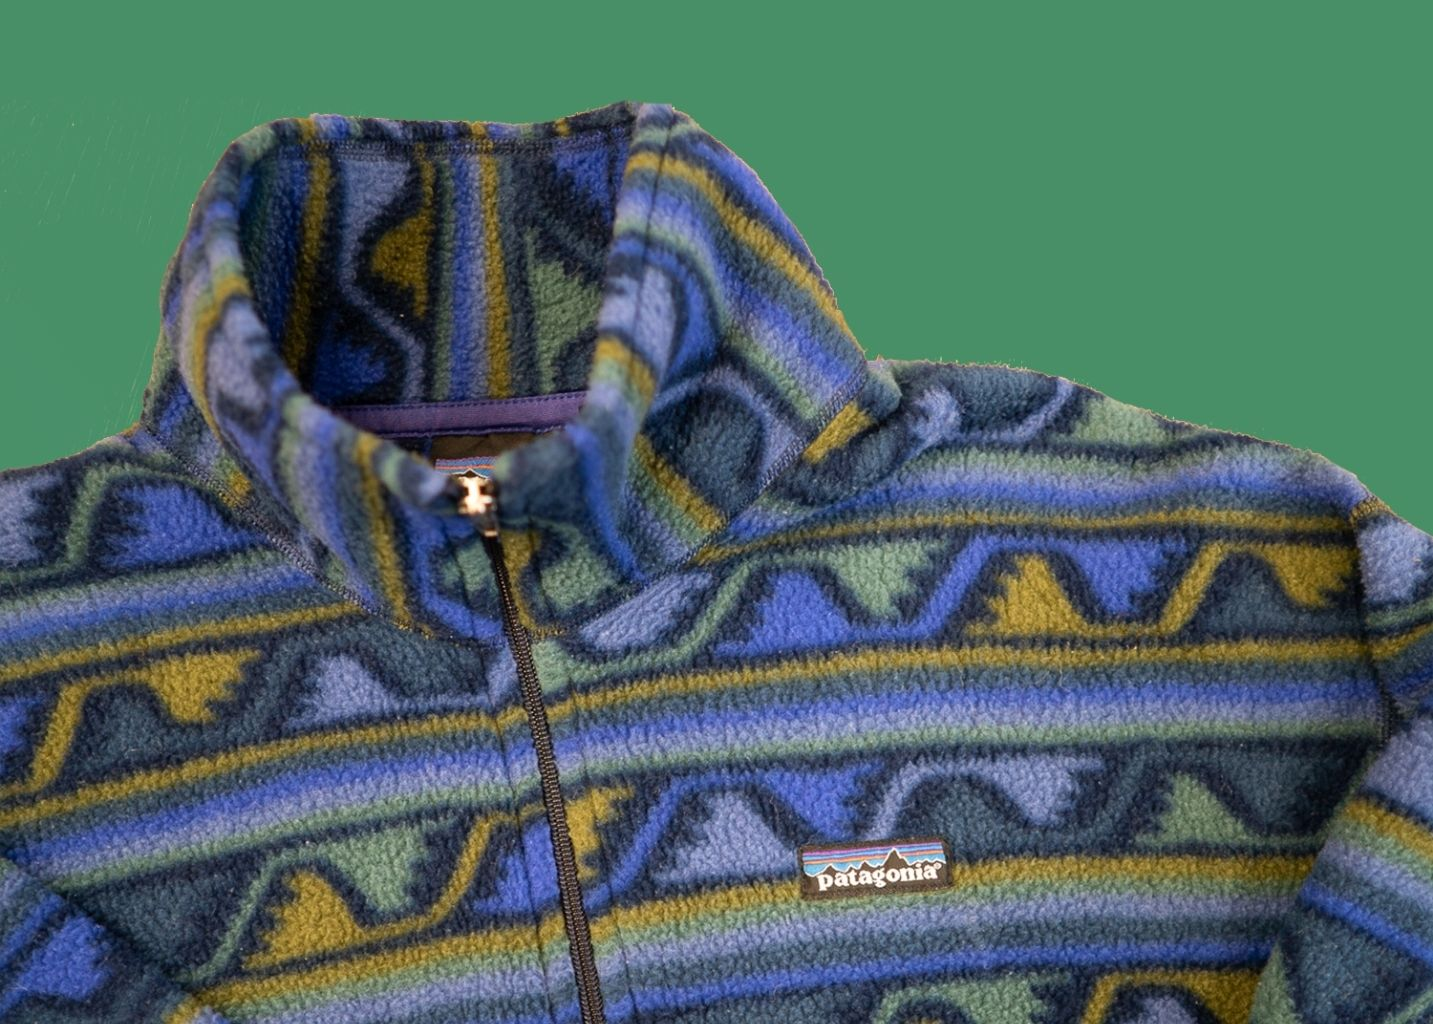 7 Rare Vintage Outdoor Clothing Items + the Stories Behind Them